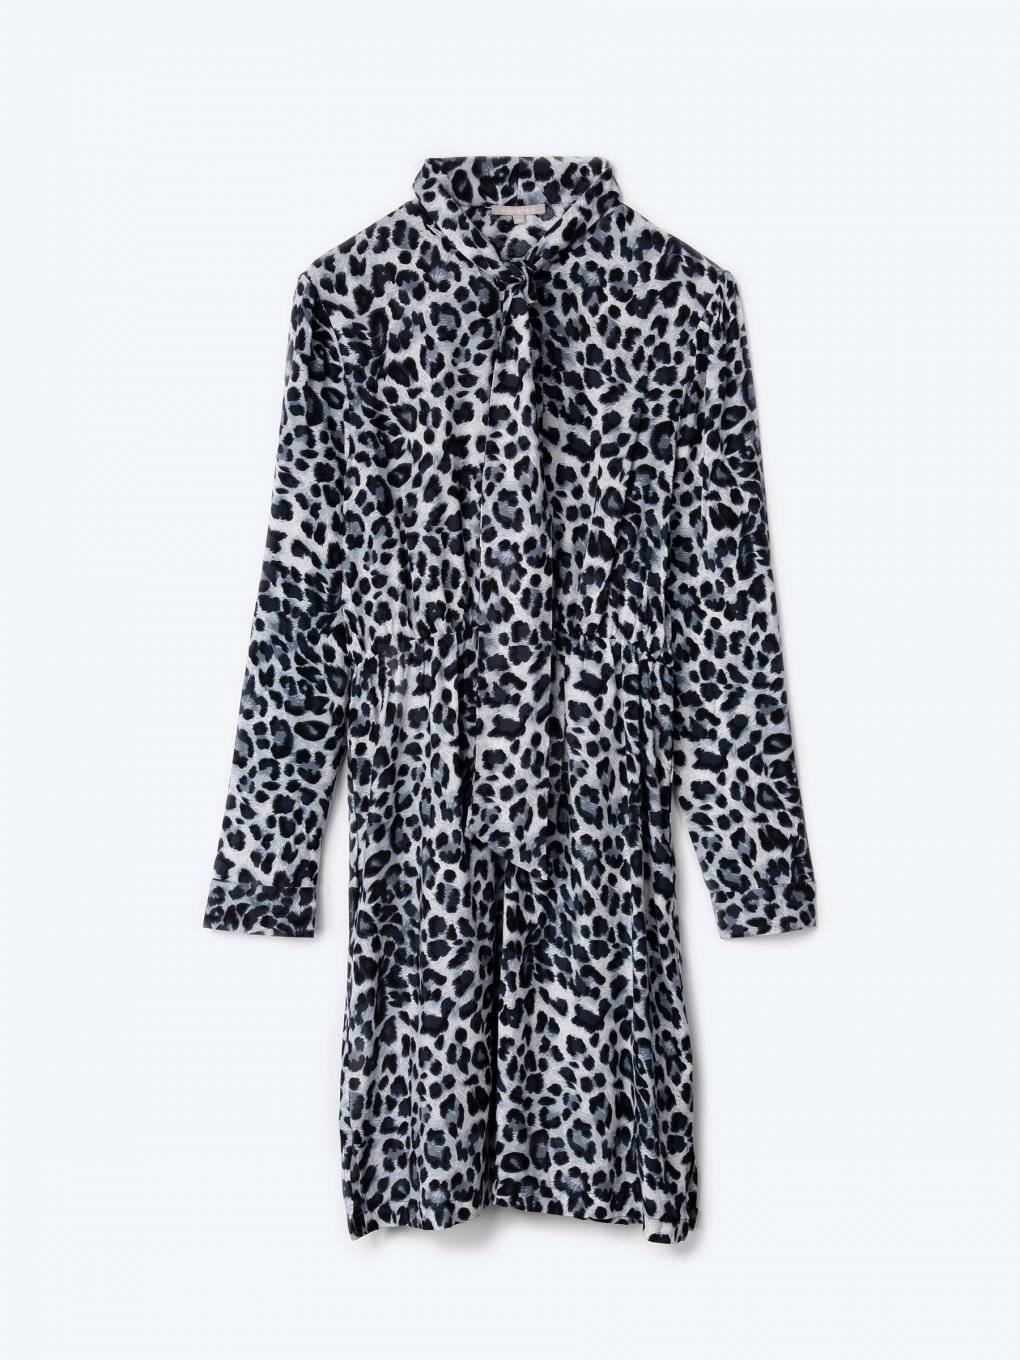 Animal print viscose tie neck dress